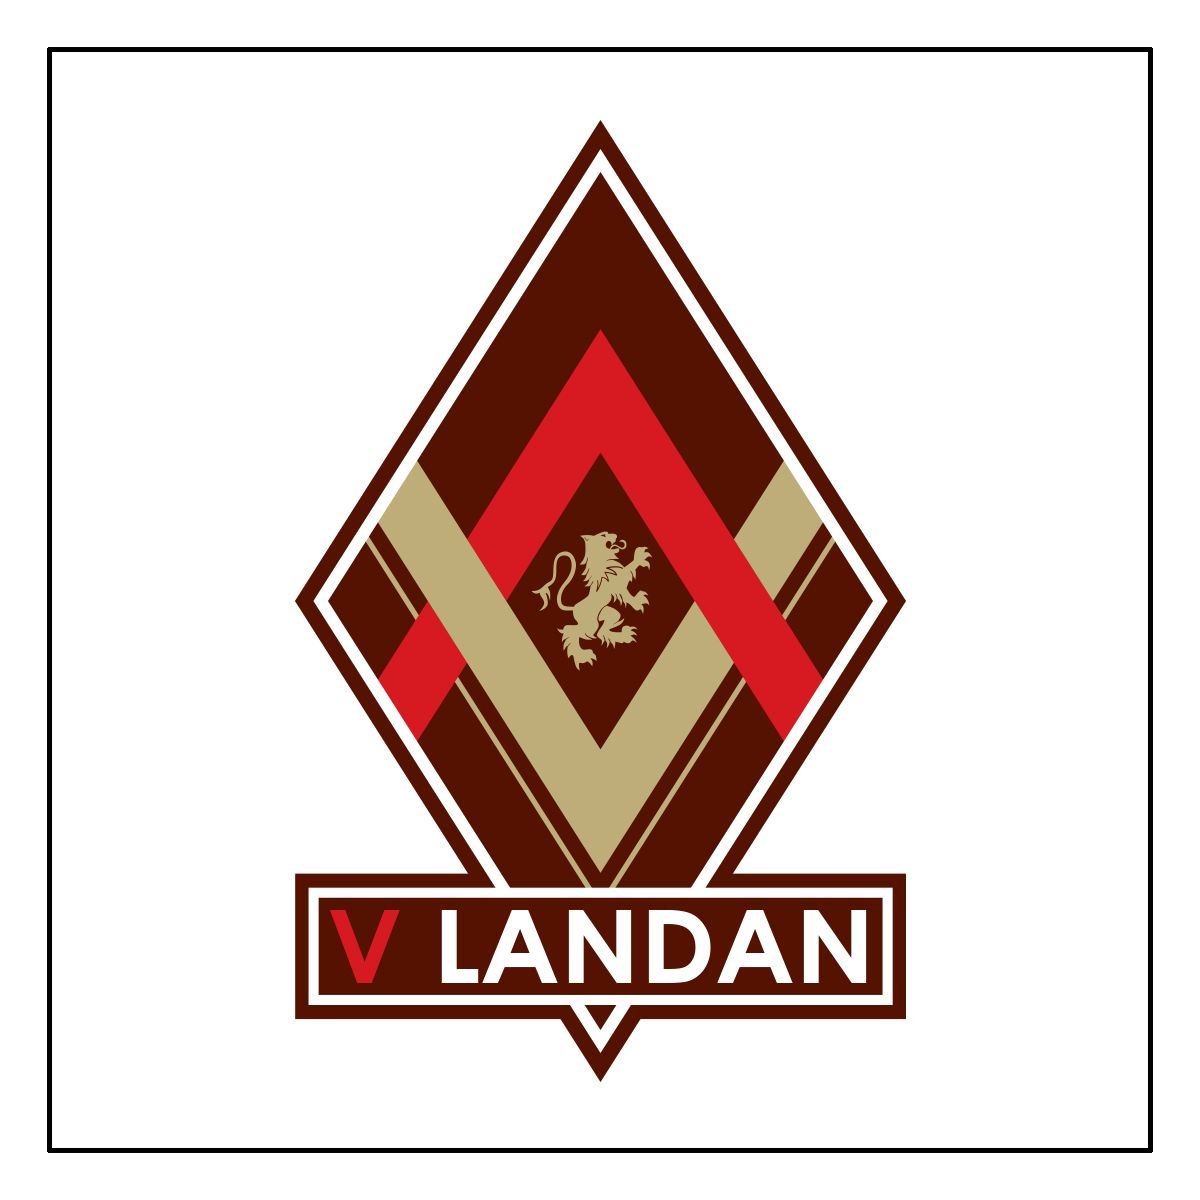 V-LANDAN - Food Producer